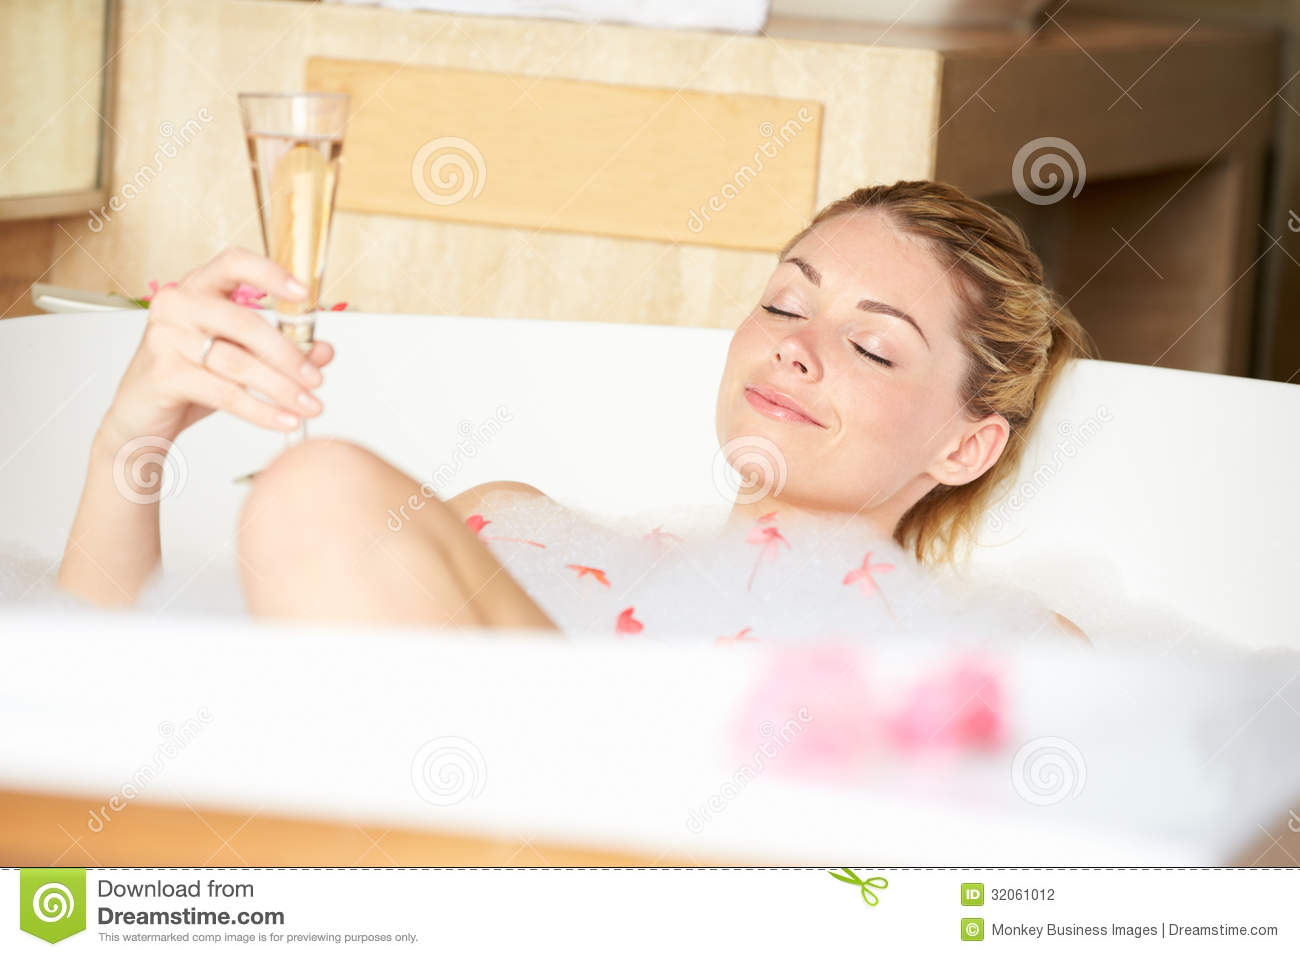 Woman Relaxing In Bubble Bath Stock Photo Image Of Eyes